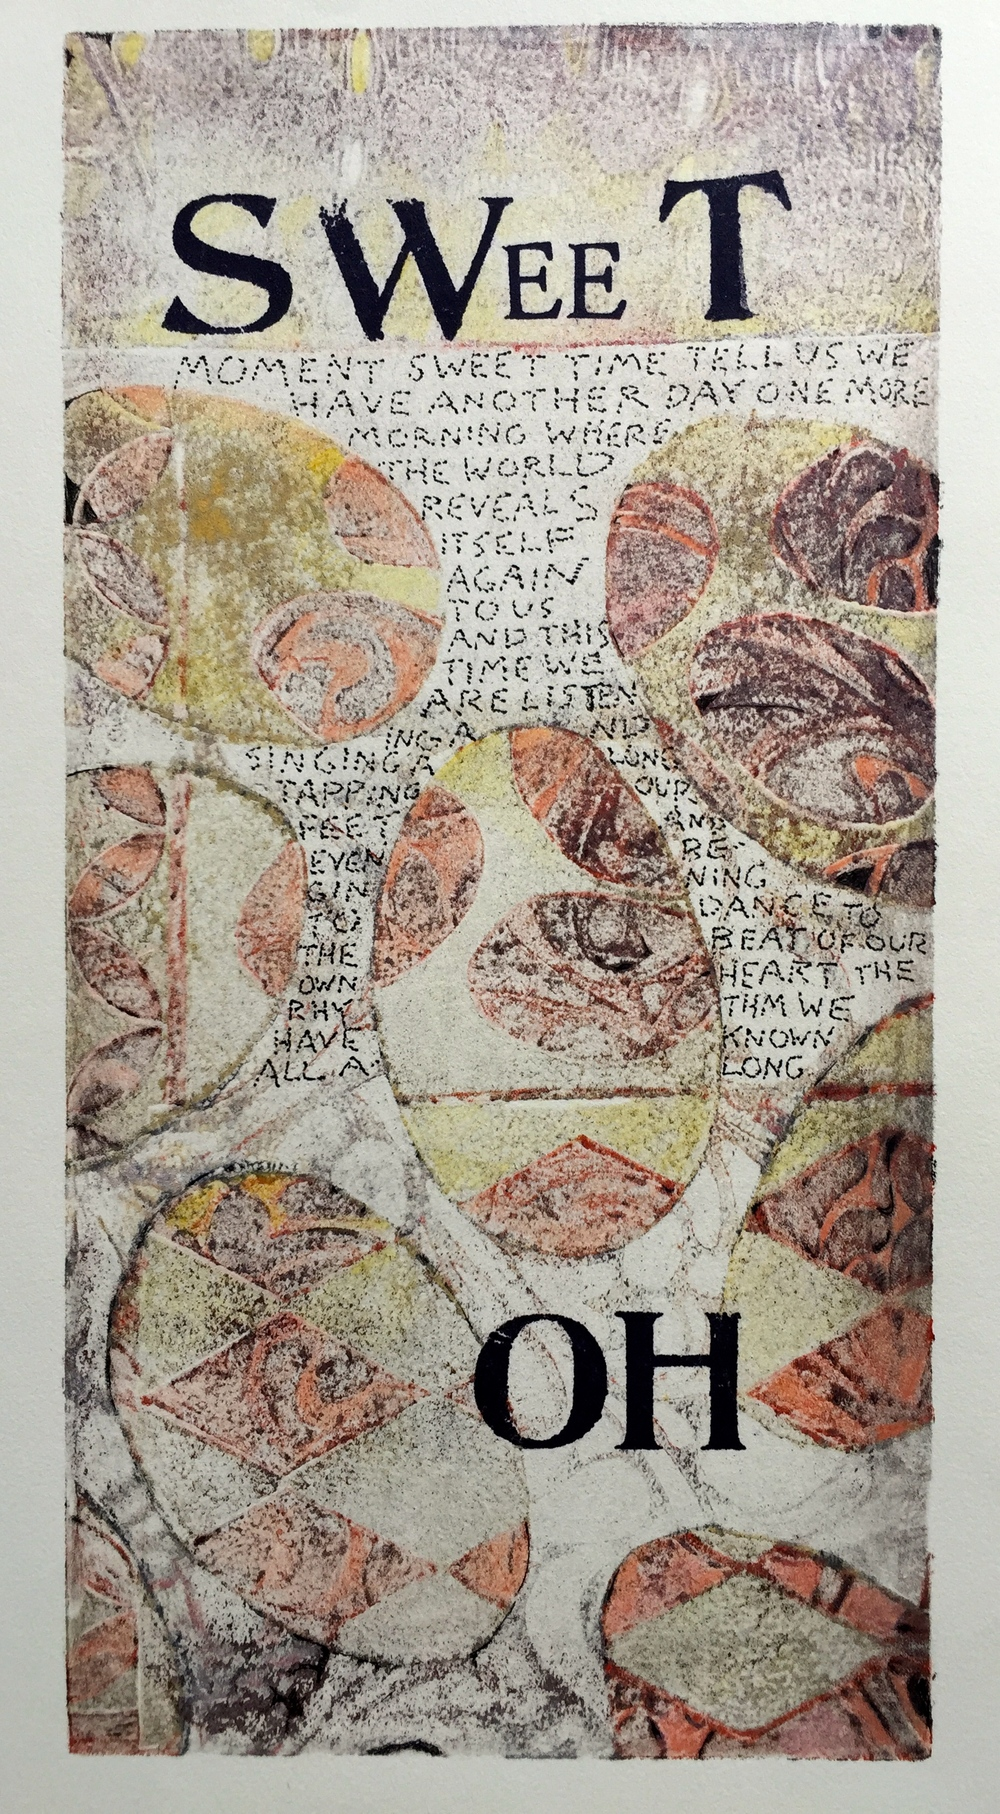 Sweet Oh   6 x 12 inches  mixed media  image: Susan Webster  hand written and stamped text: Stuart Kestenbaum  2015